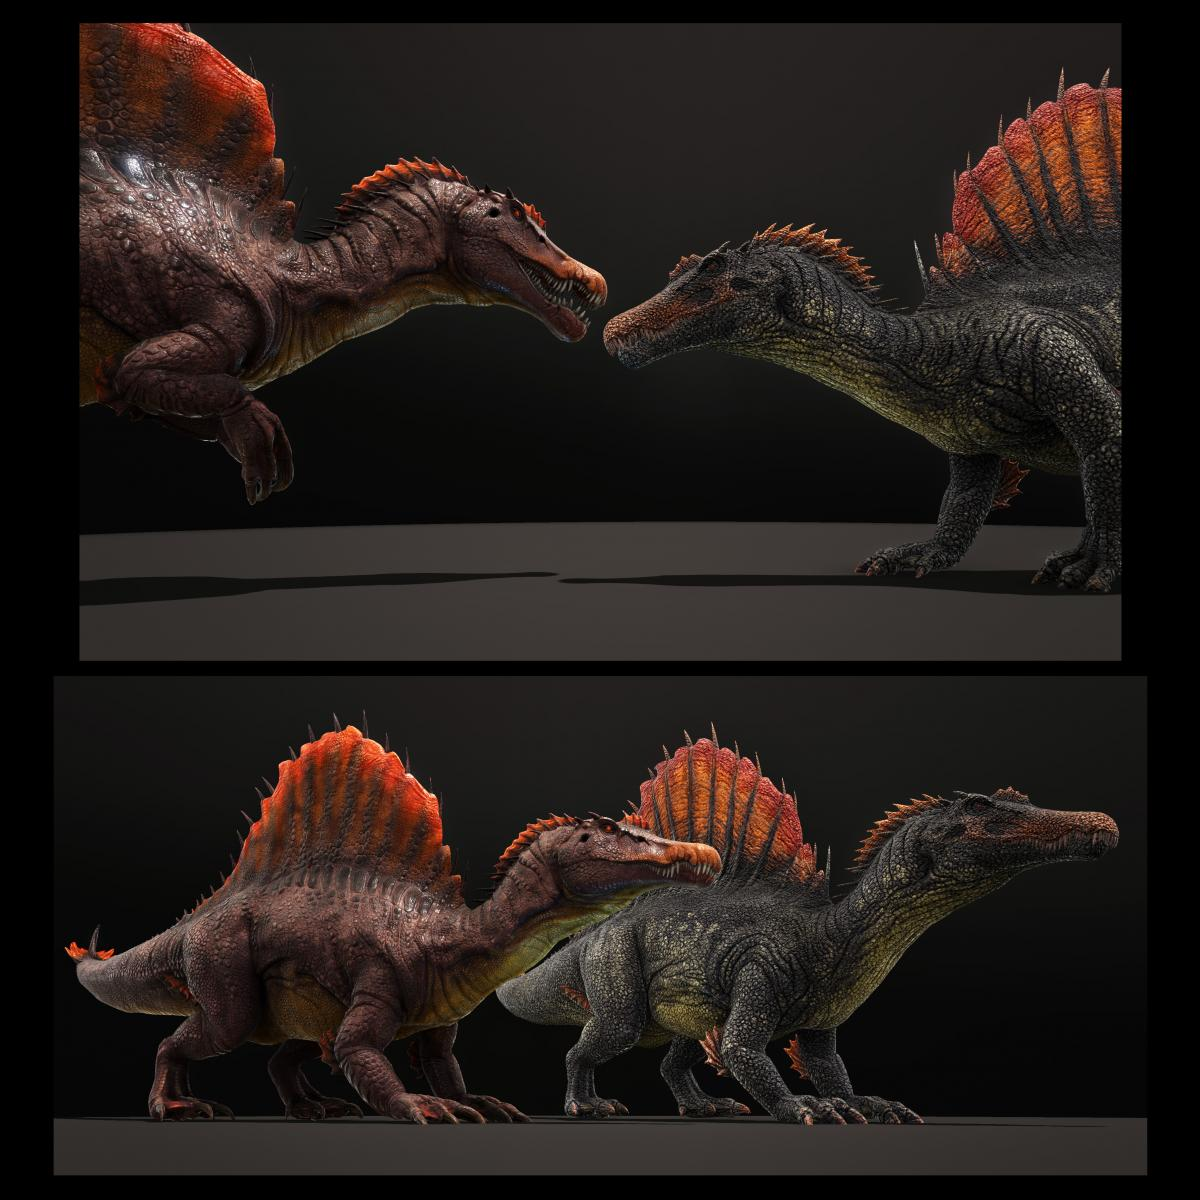 large.Spino.jpg.5a2ace04fde09df0928a58ae